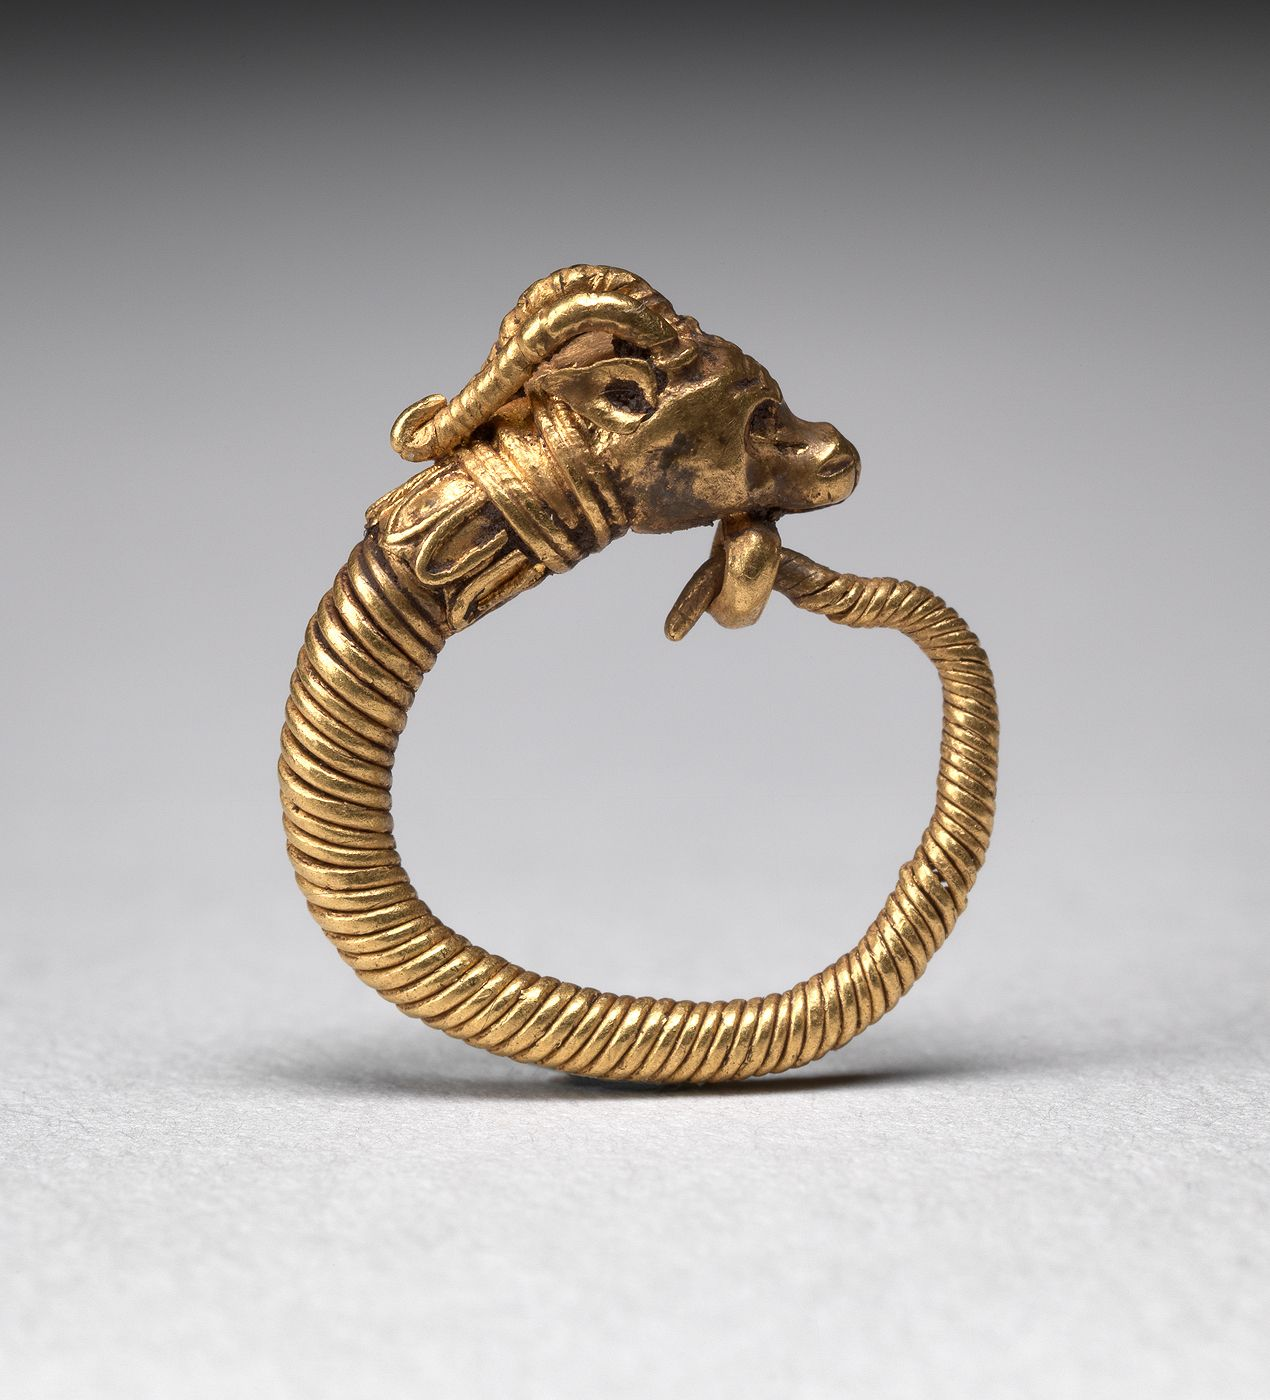 Early Egyptian Earring: The god Amun was often portrayed as a ram and both were associated with creativity and virility. Earrings were worn by men and women, both in life and after death, and were made in many different shapes, using a variety of materials.